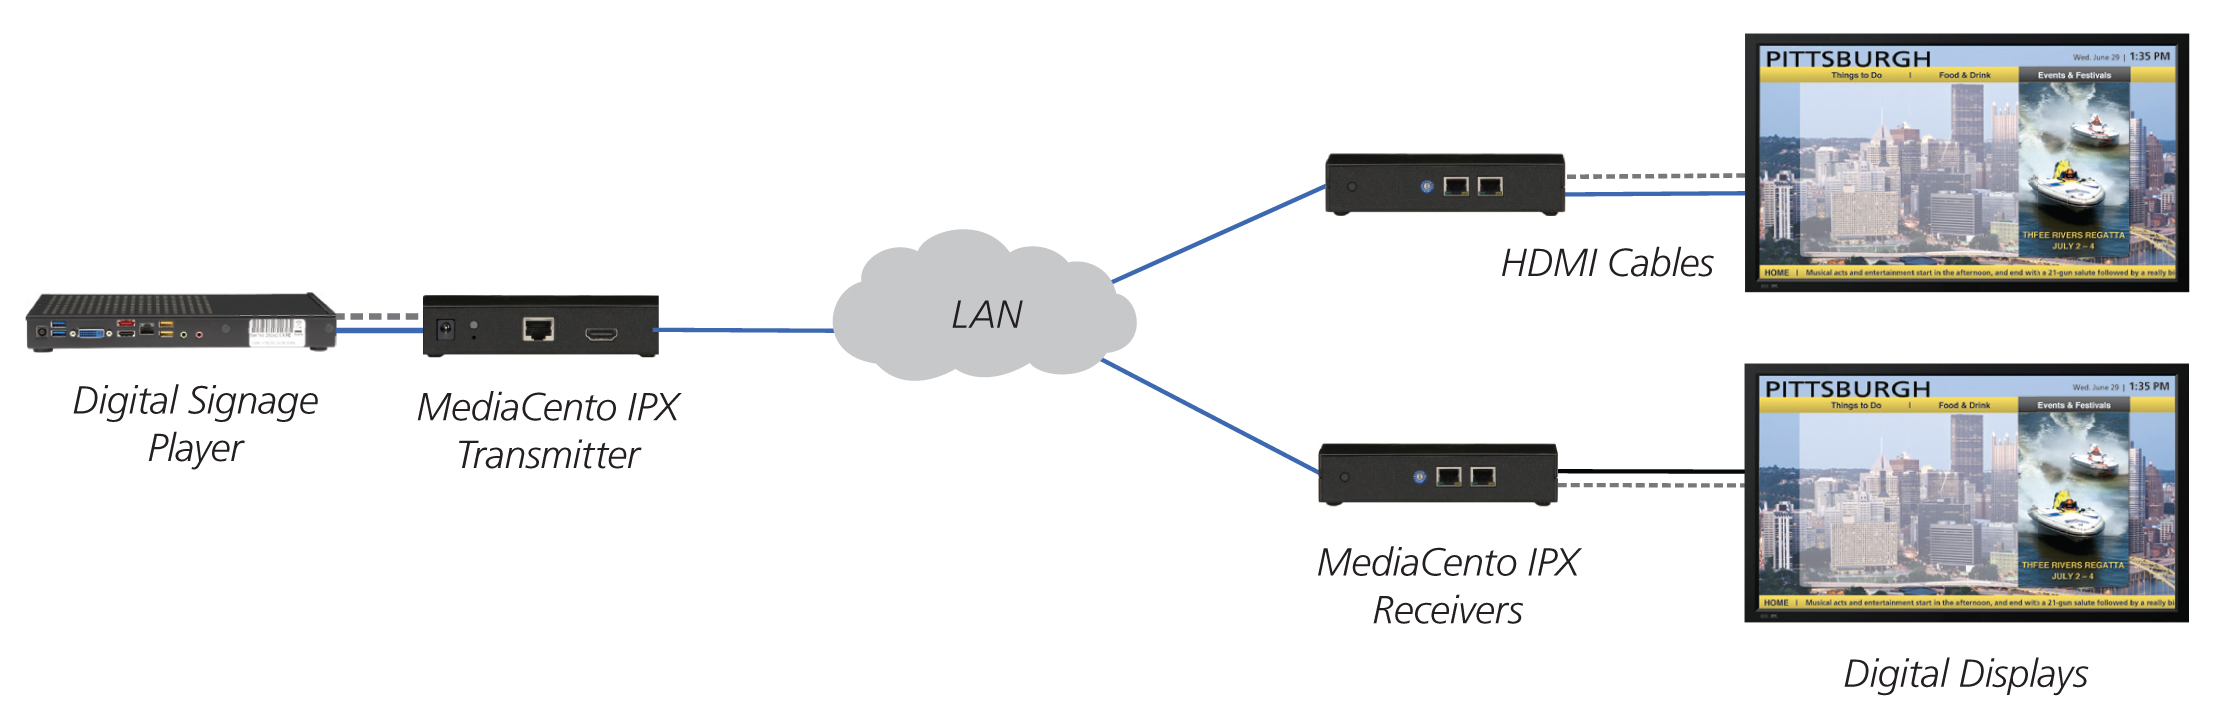 HDMI-over-IP Network Distribution - MediaCento IPX